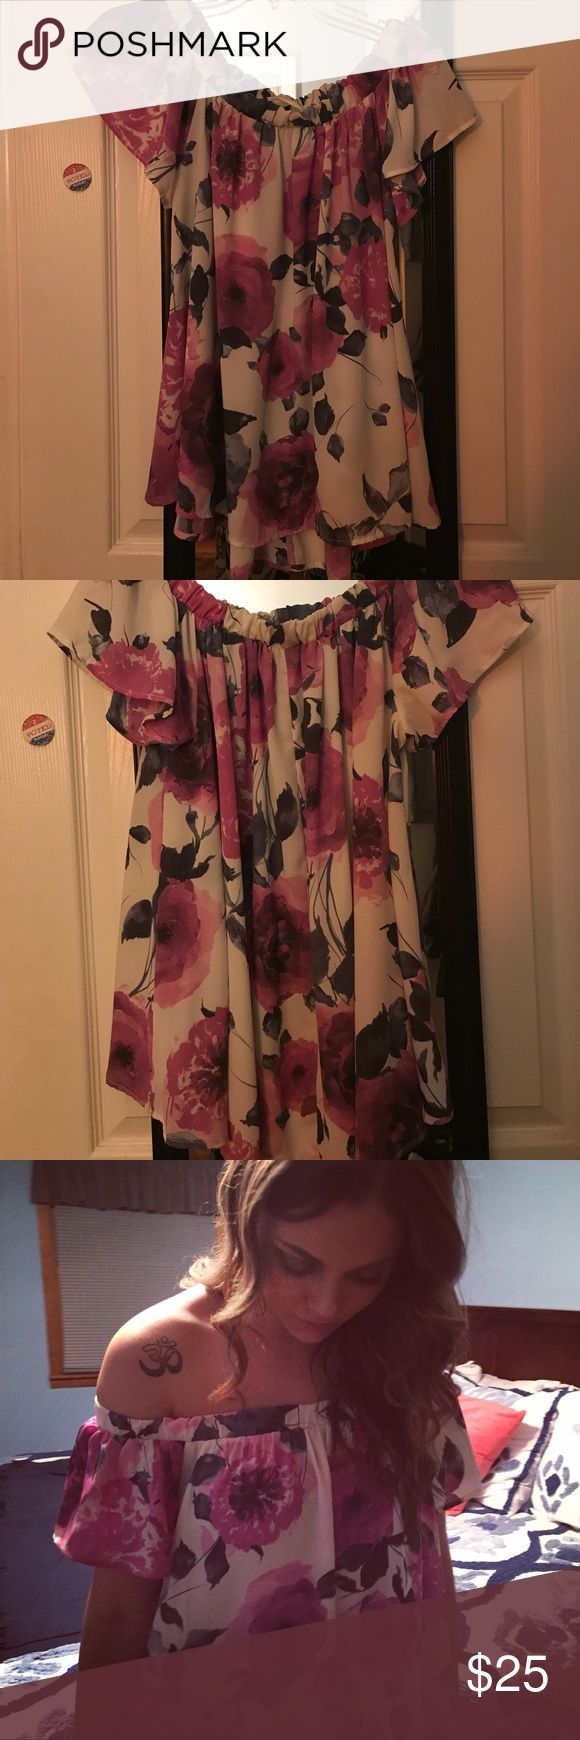 Off the shoulder floral top Worn once! No size on tag but I believe I bought a small. Fits like a small/medium. Bought from 1 happy girl boutique. style rack Tops